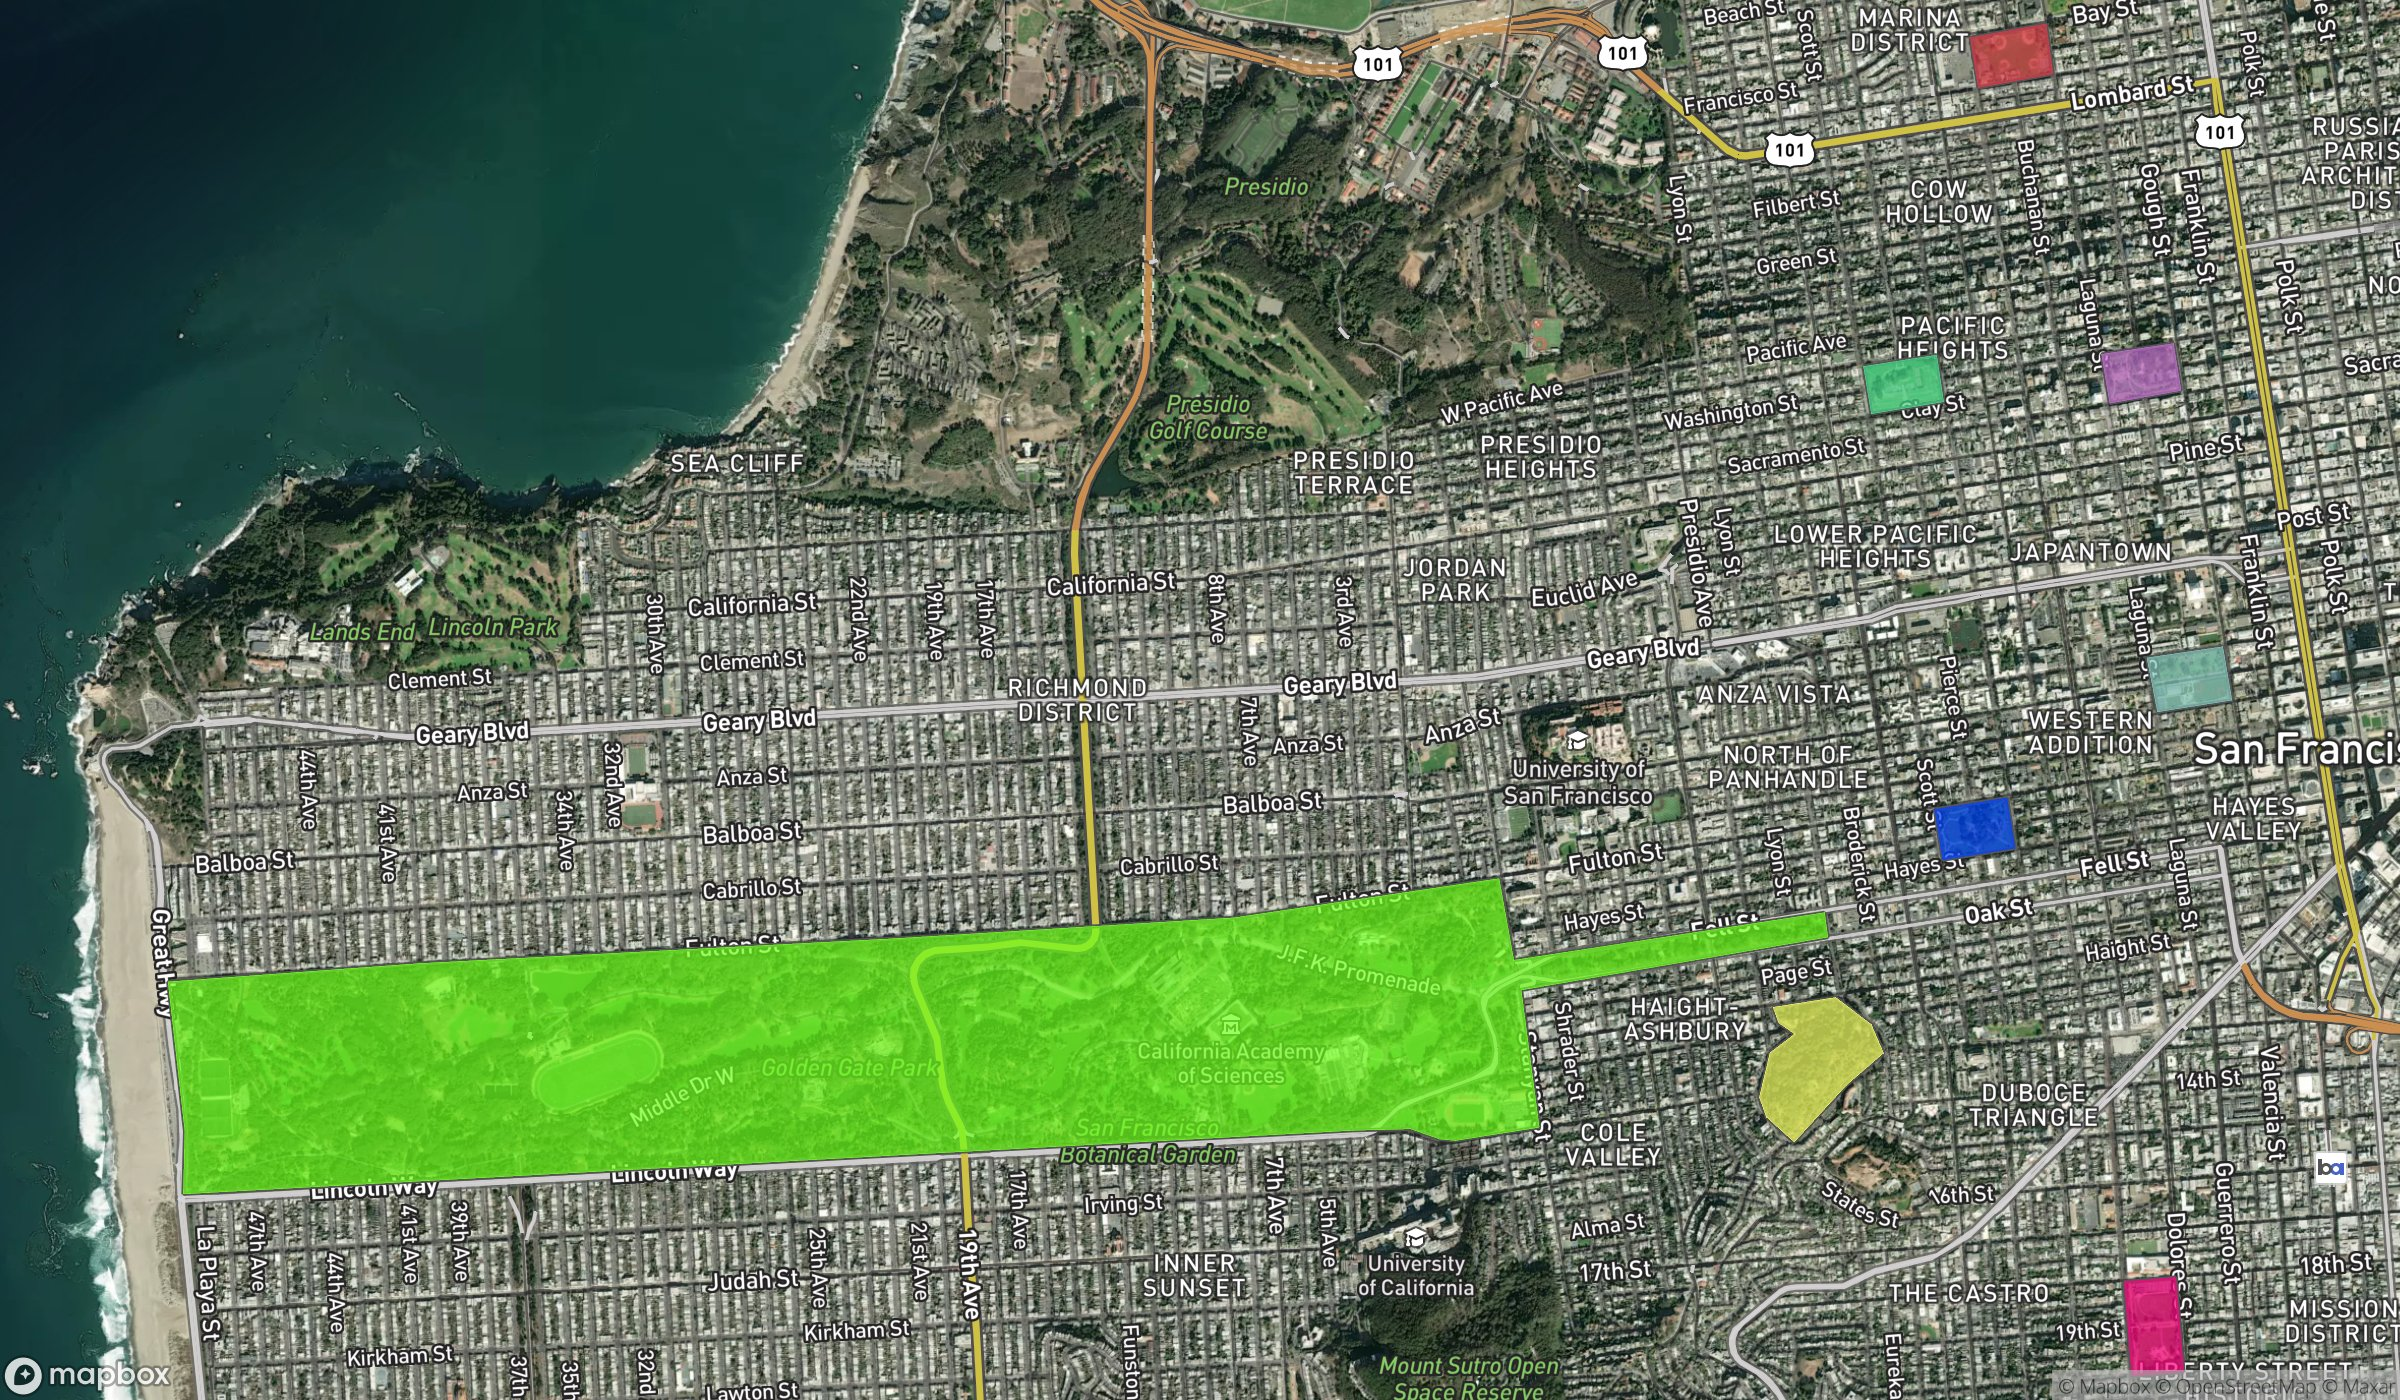 Mapbox Static API with overlays showing parks in San Francisco, CA